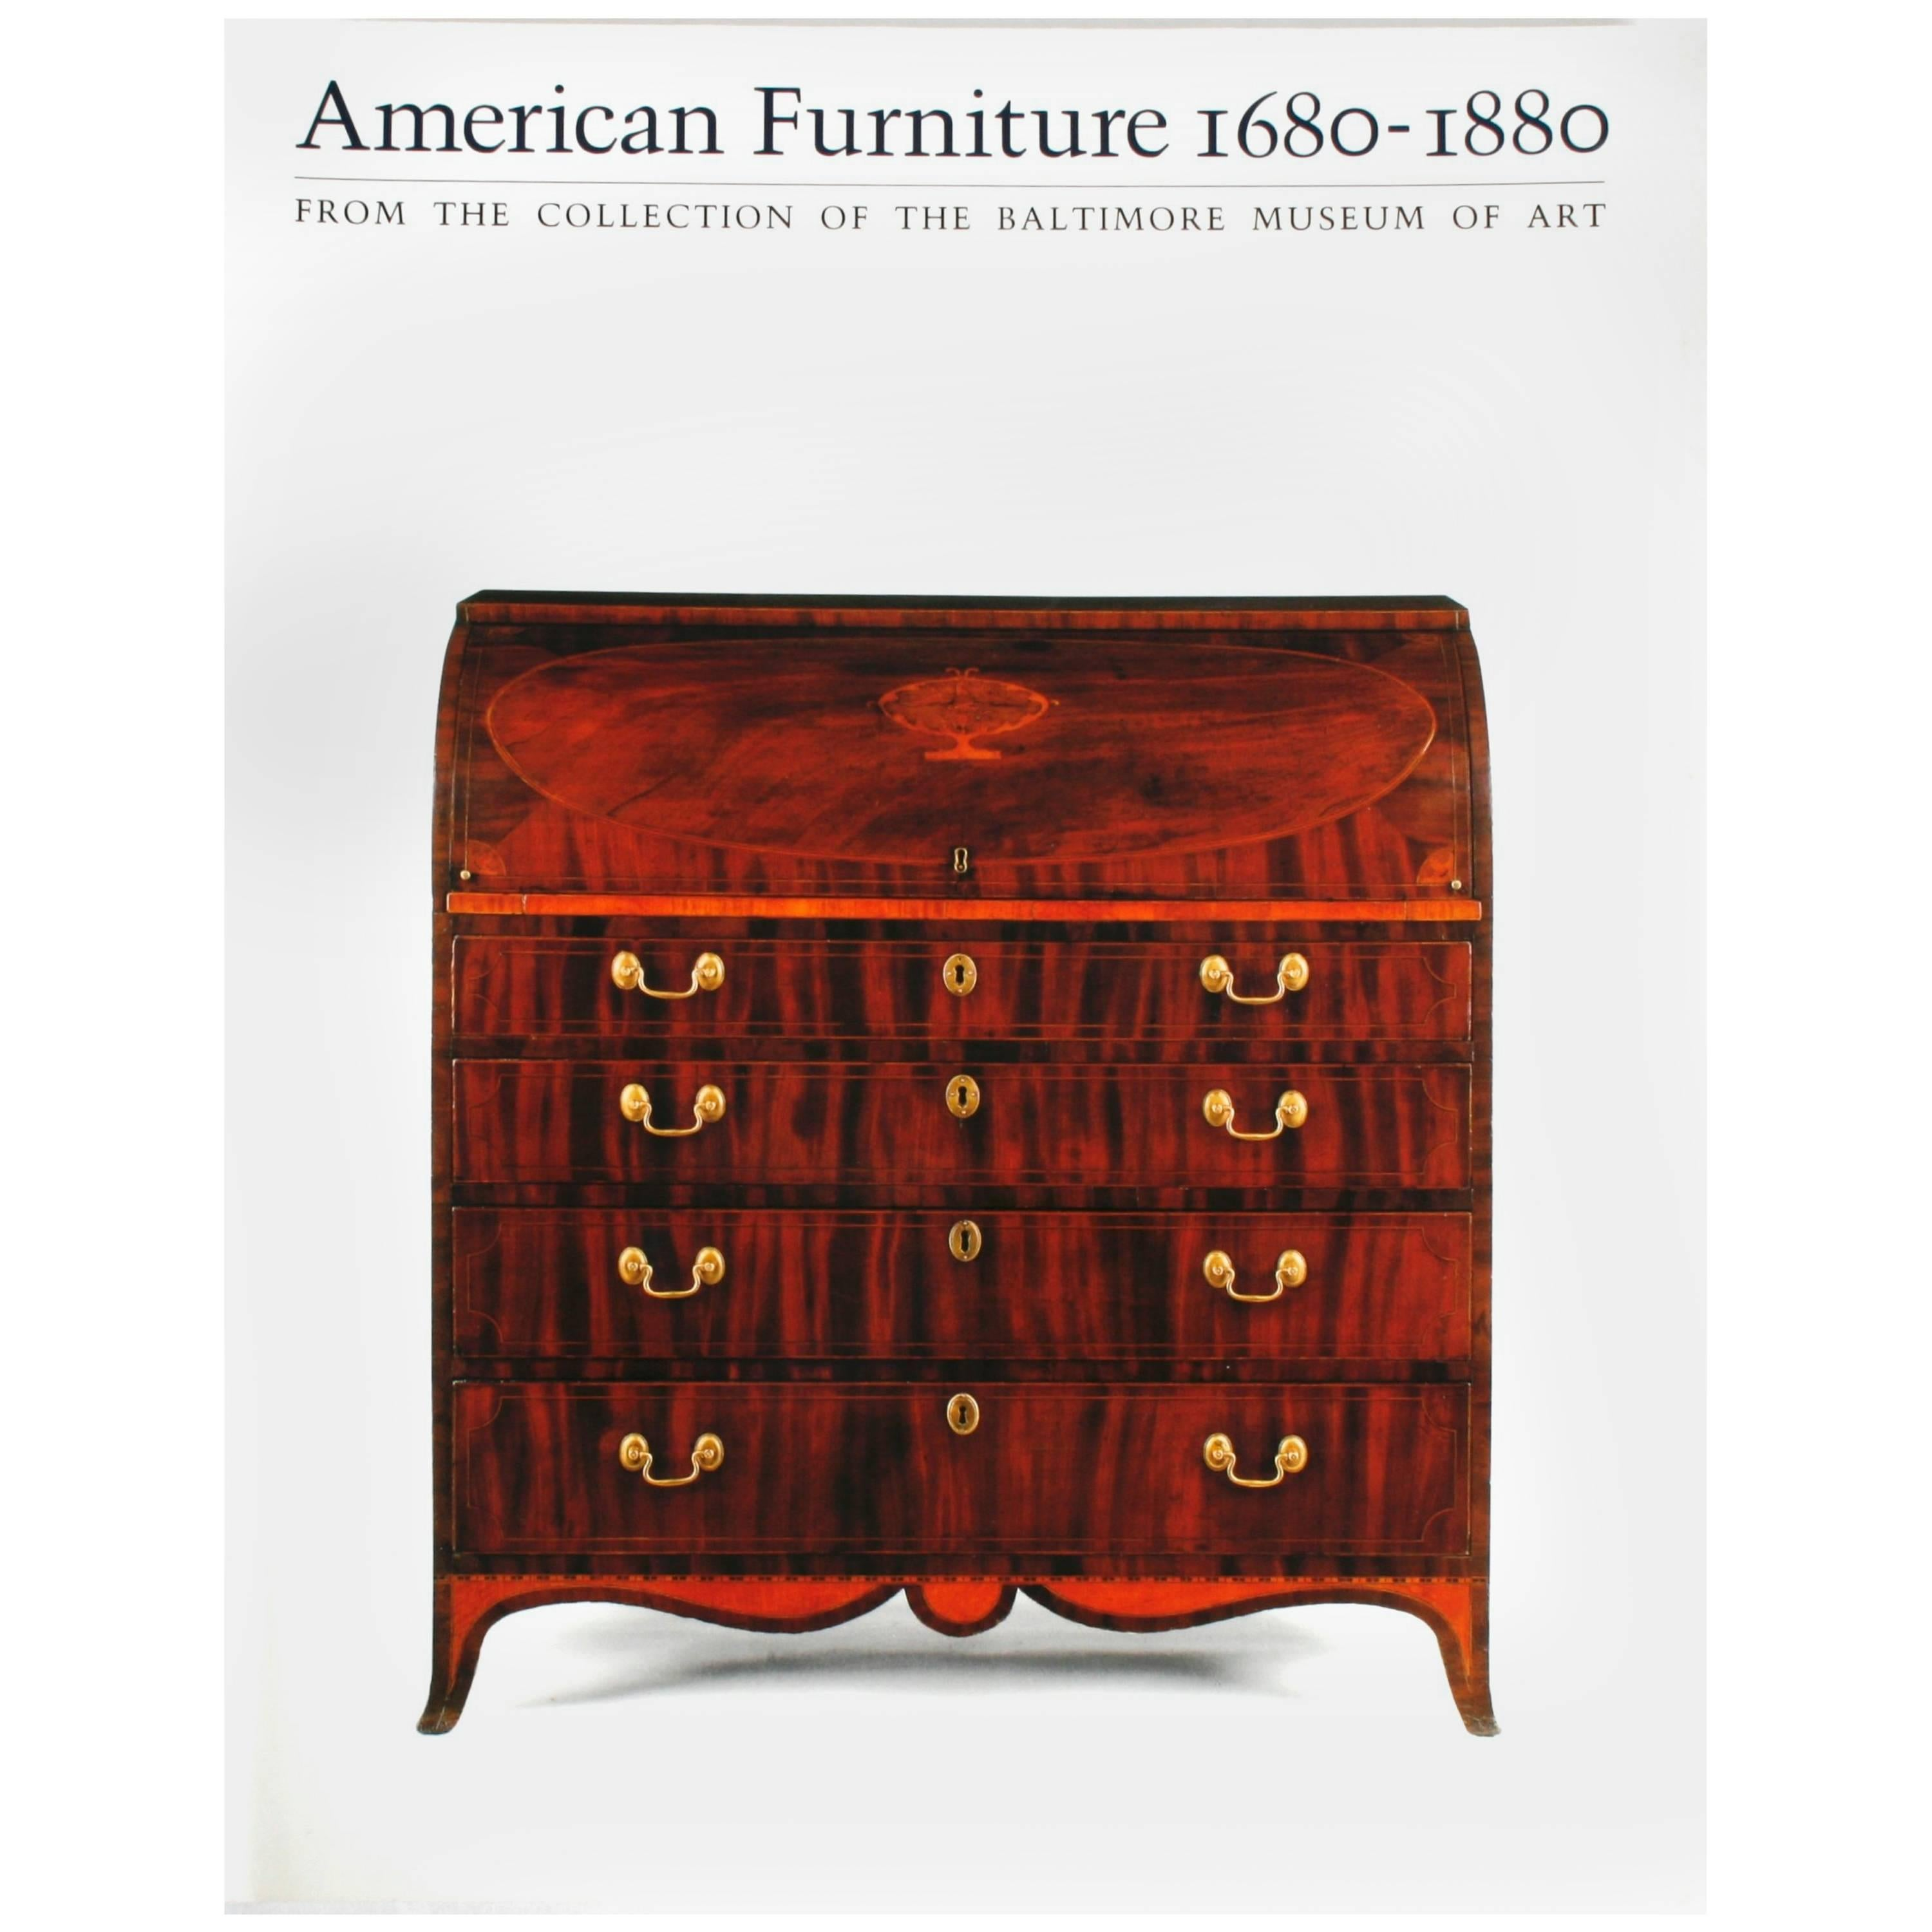 American Furniture 1680-1880, Collection From the Baltimore Museum of Art